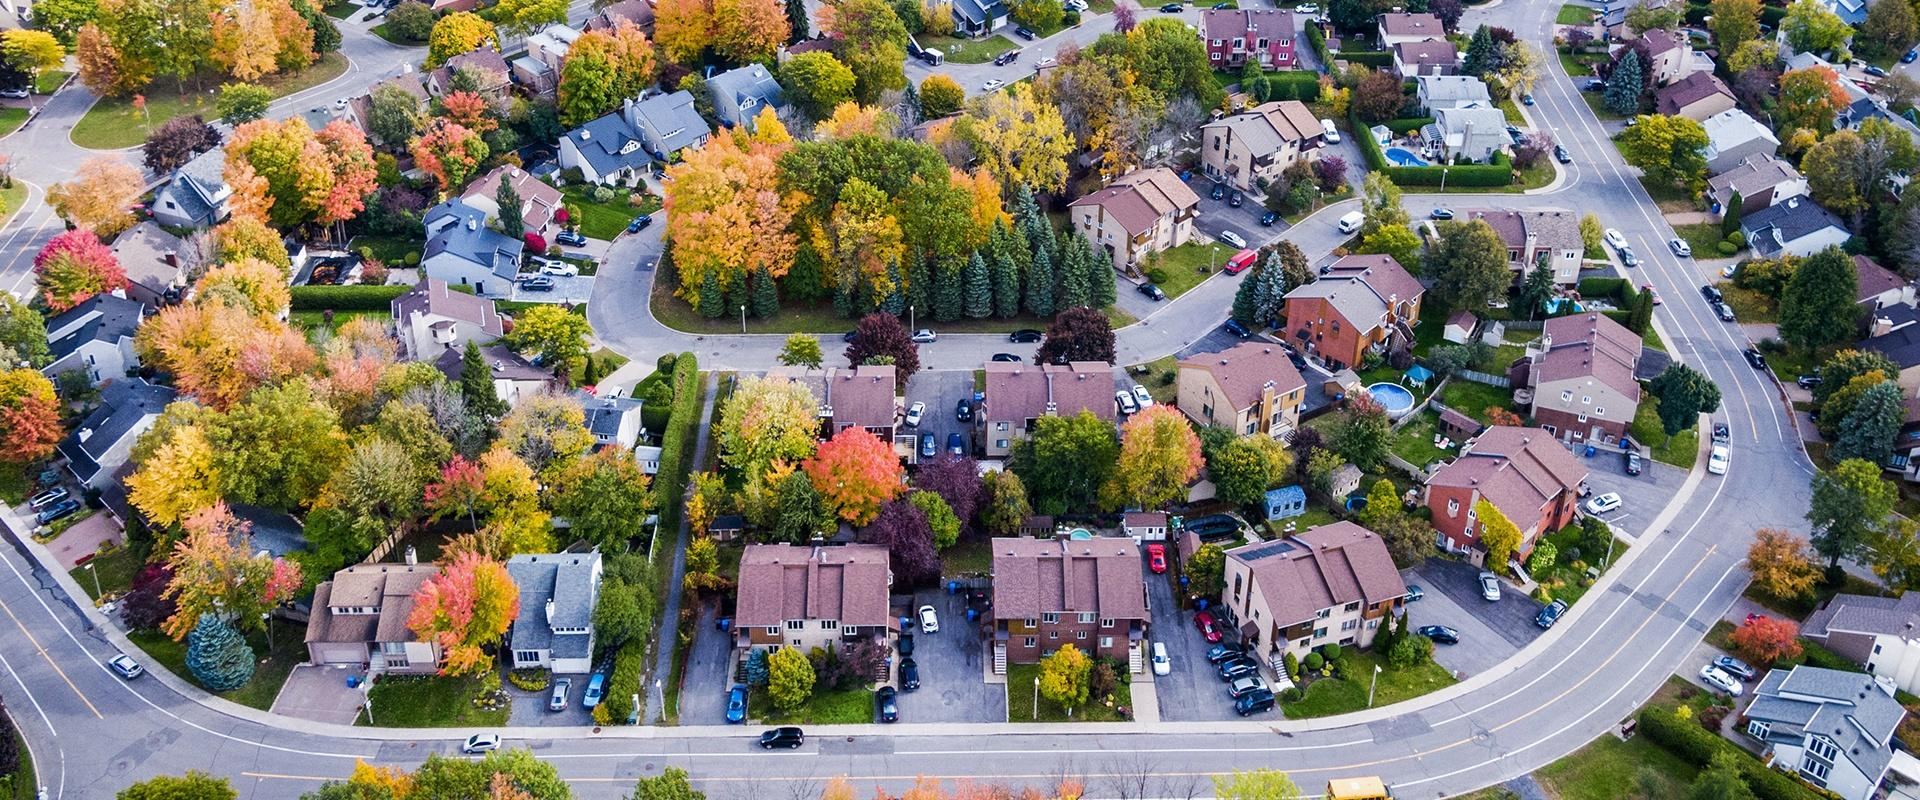 an overhead view of a residential neighborhood